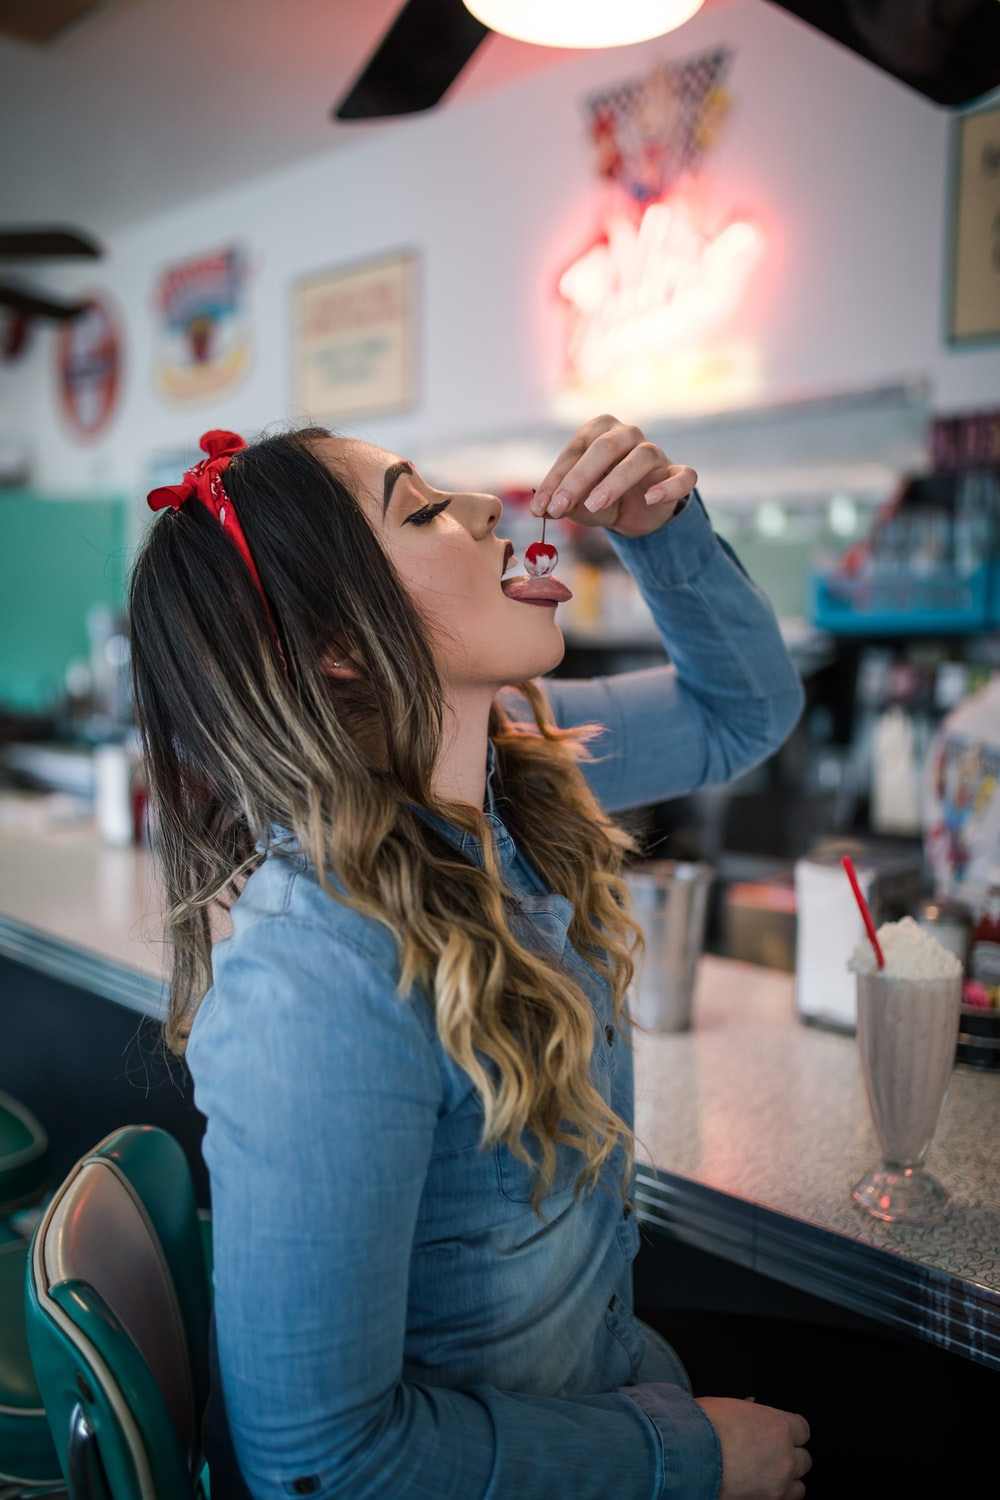 woman wearing blue long-sleeved shirt eating cherry from parfait inside room